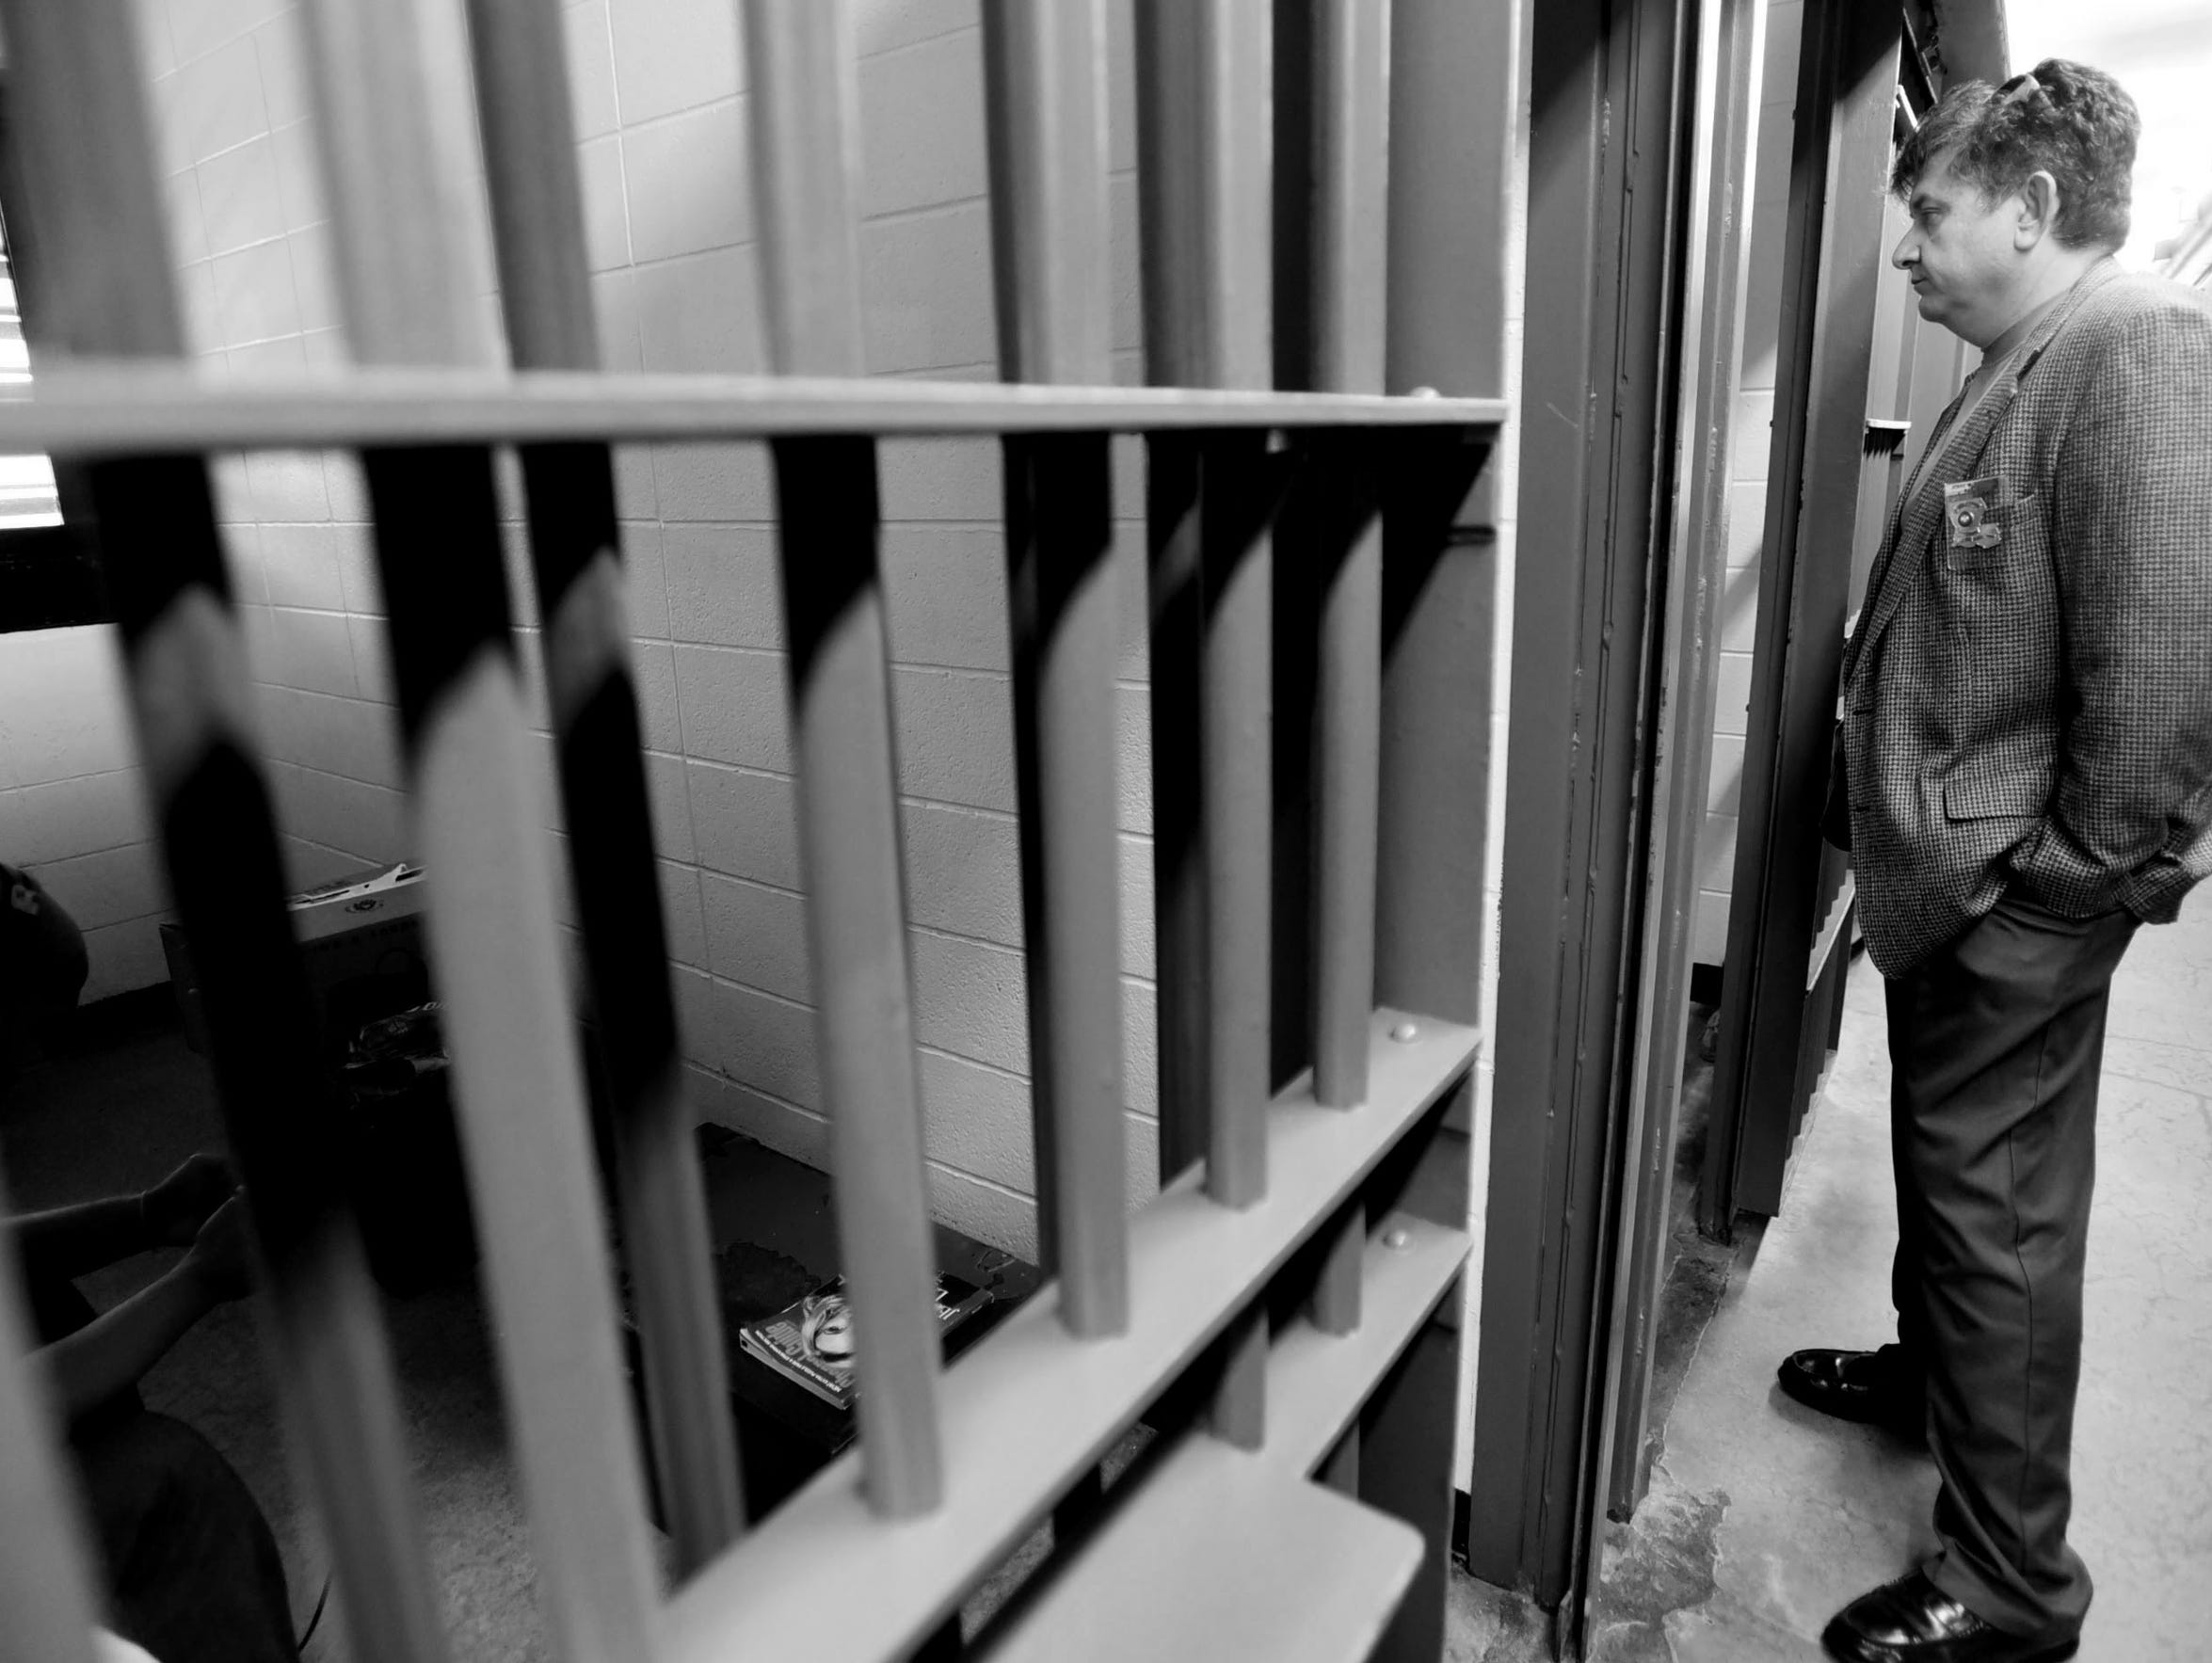 Warden Jerry Goodwin converses with an inmate who is